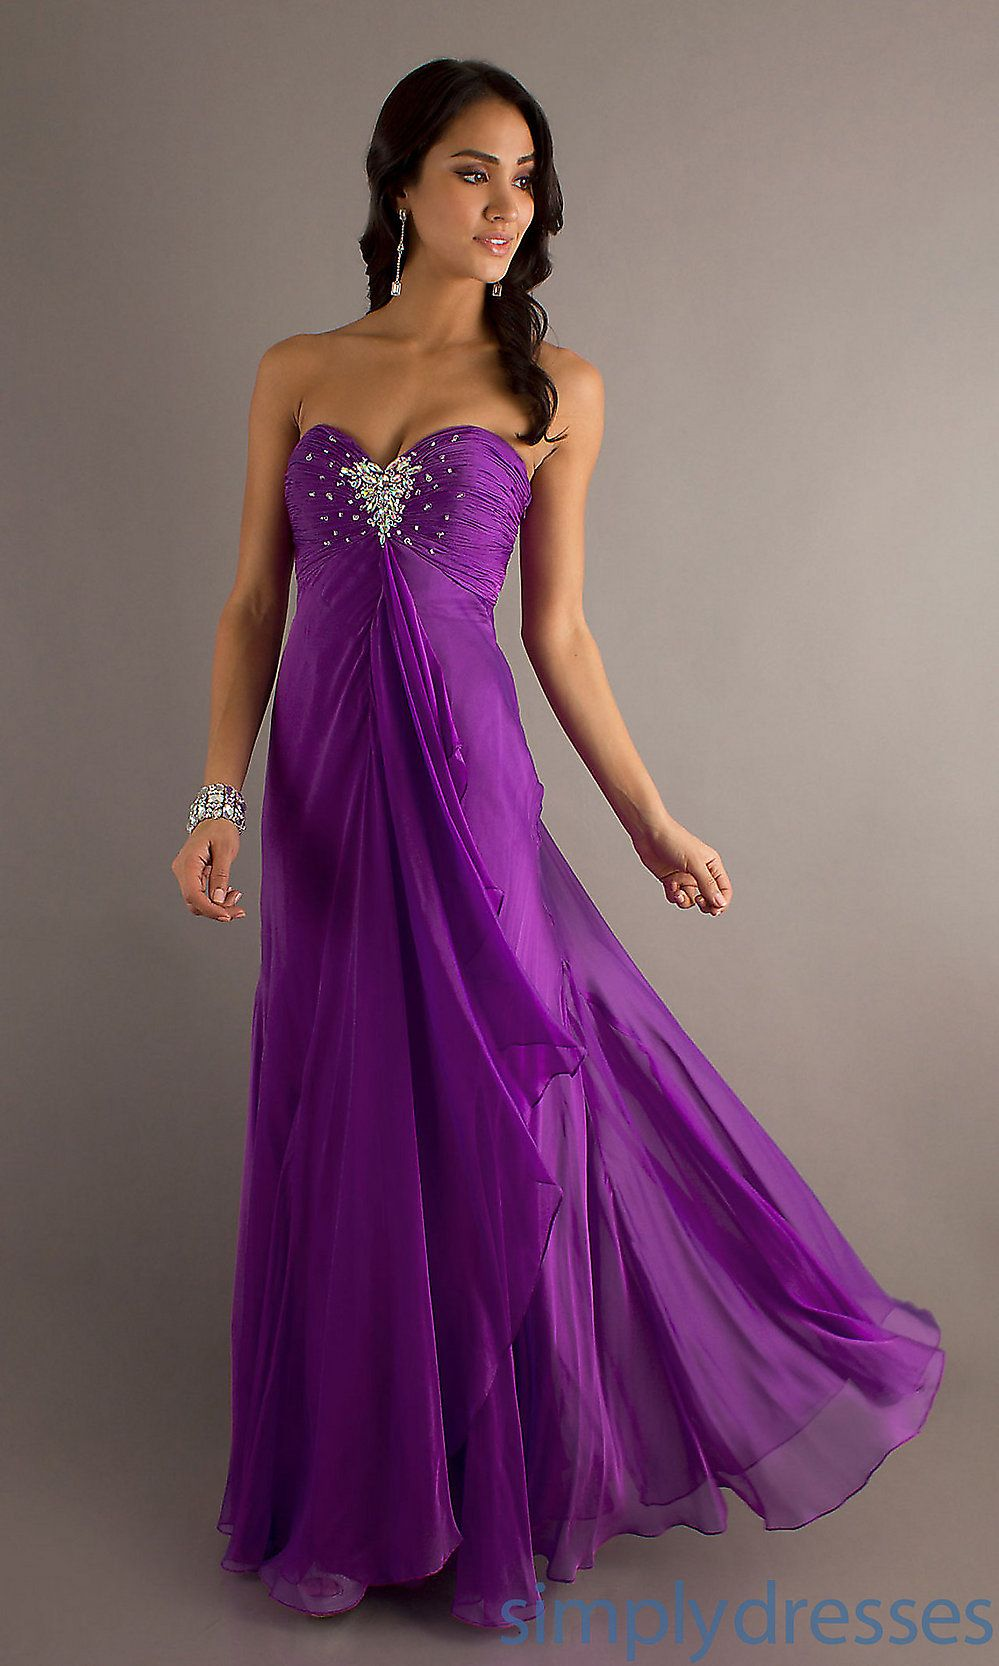 Long Strapless Prom Dress, Strapless Prom Gowns - Simply Dresses